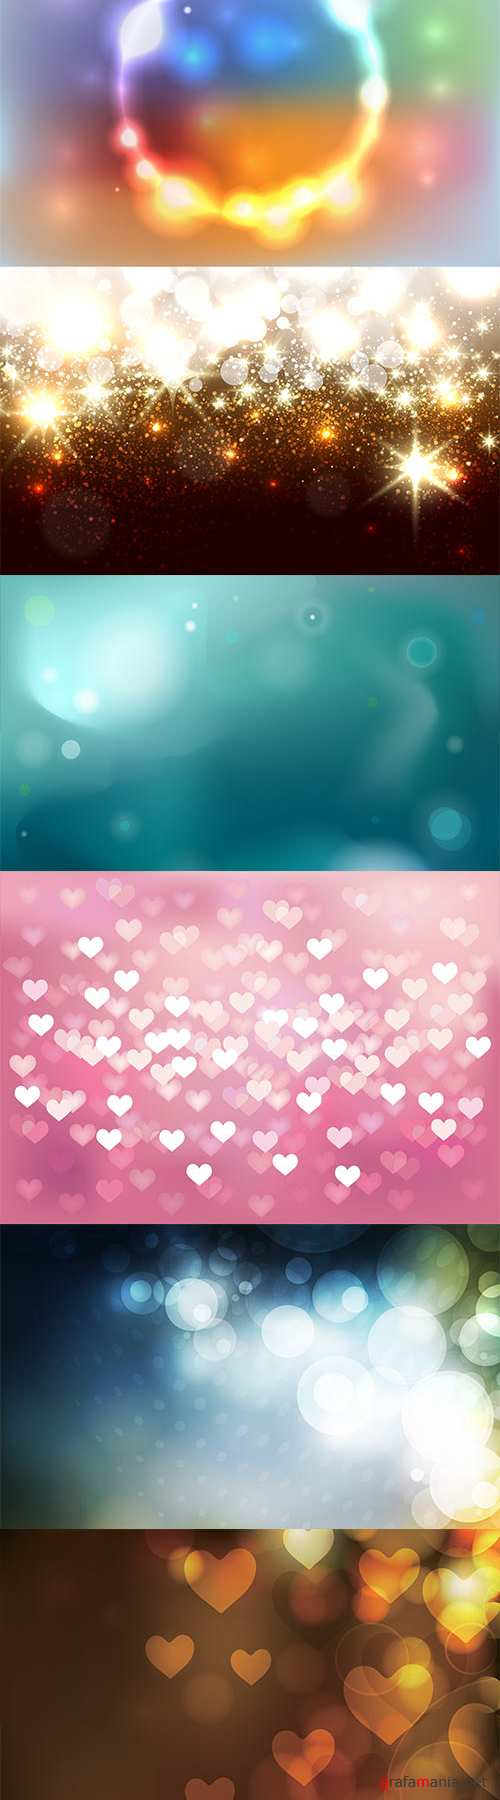 Vector bokeh colorful backgrounds - 6